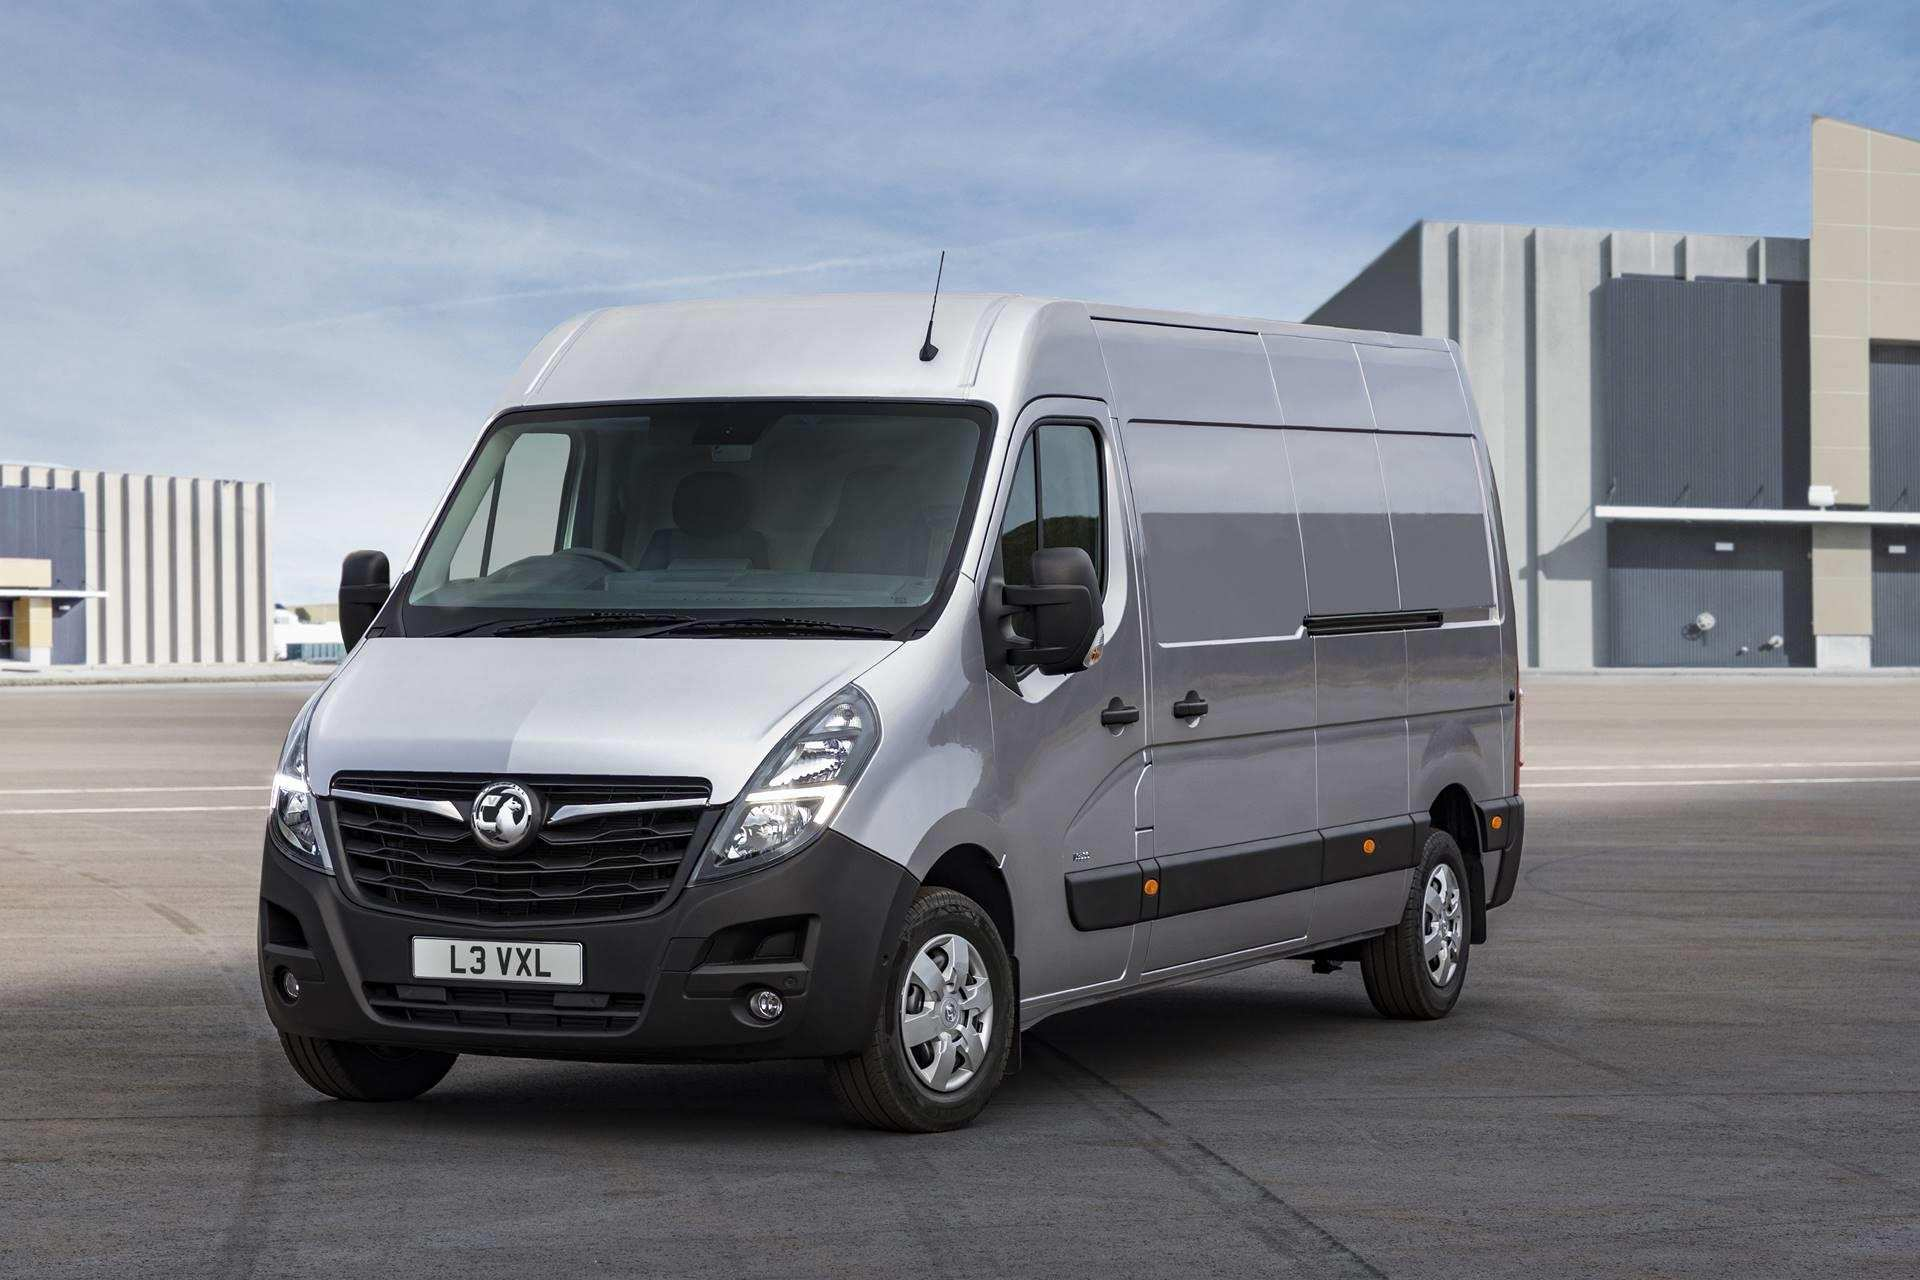 66 Gallery of Opel Movano 2020 Prices with Opel Movano 2020